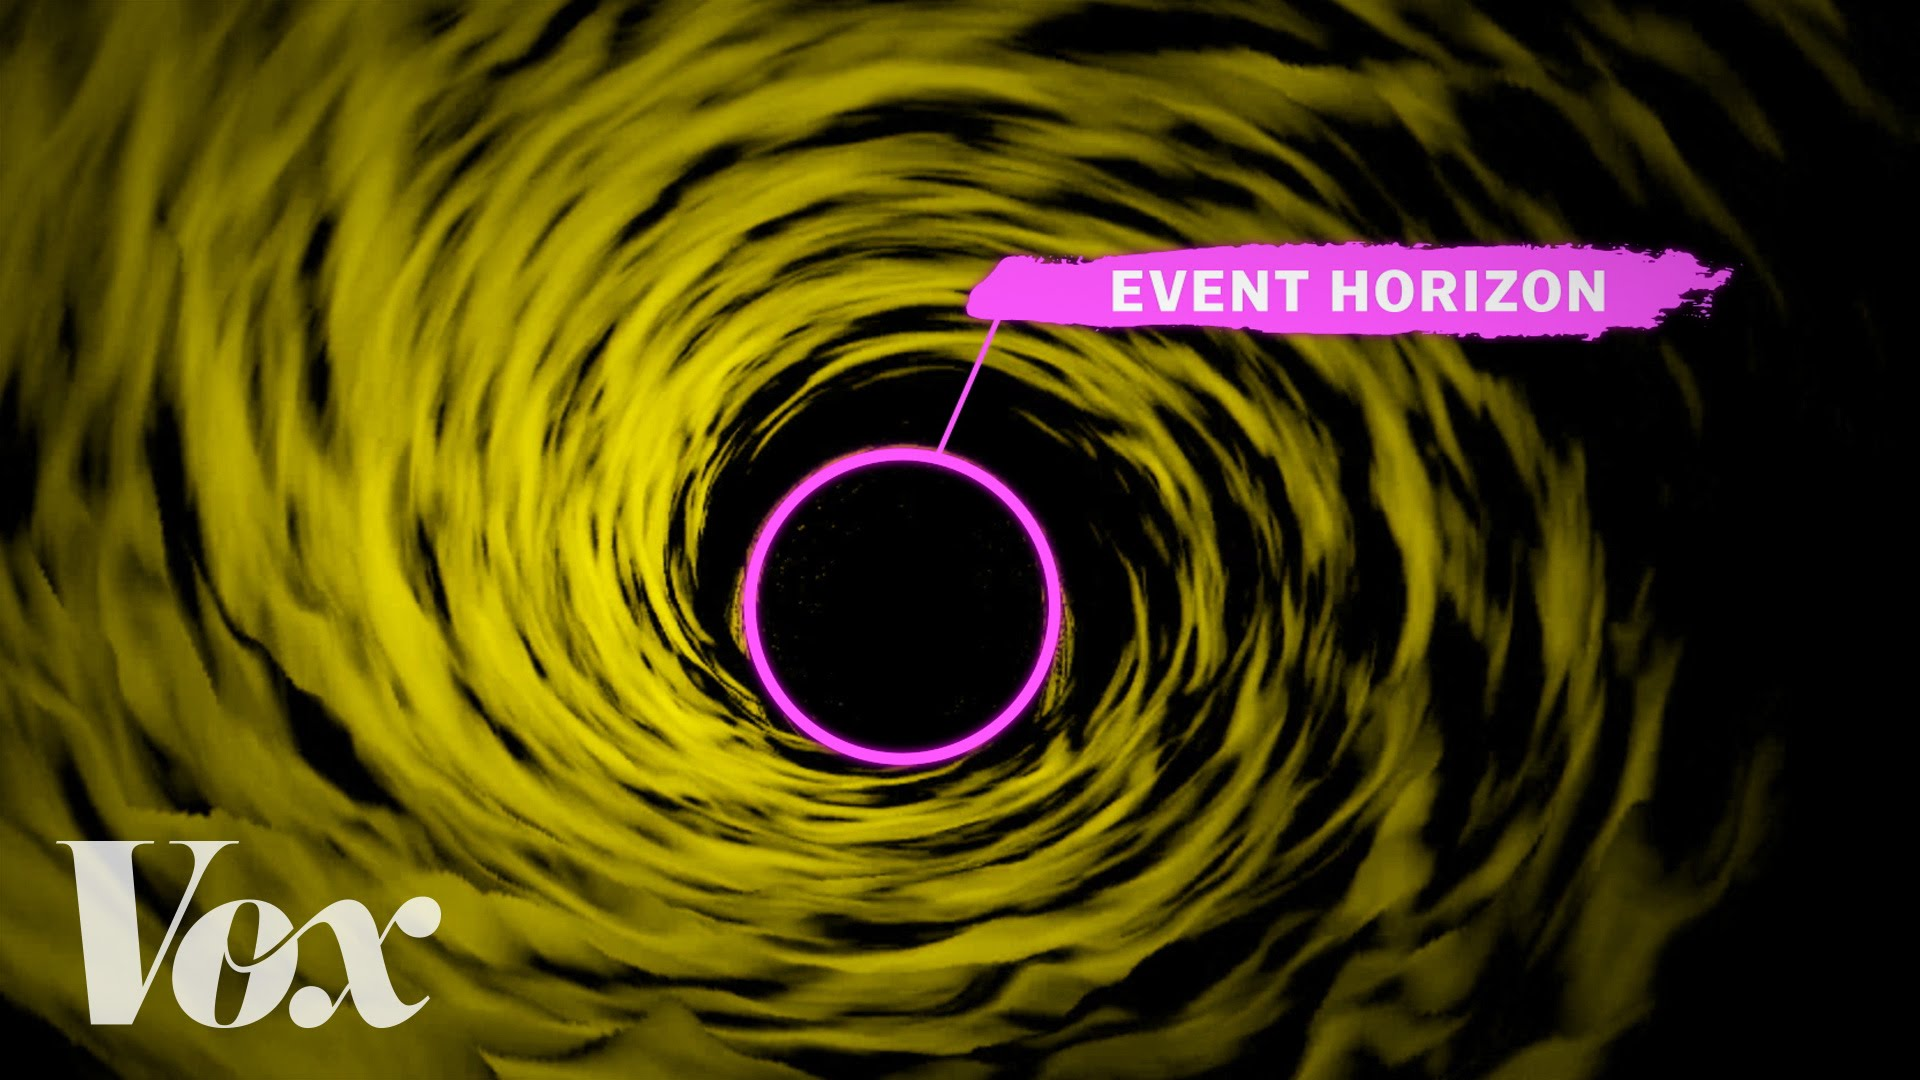 Why Every Picture Of A Black Hole Is An Illustration Vox The